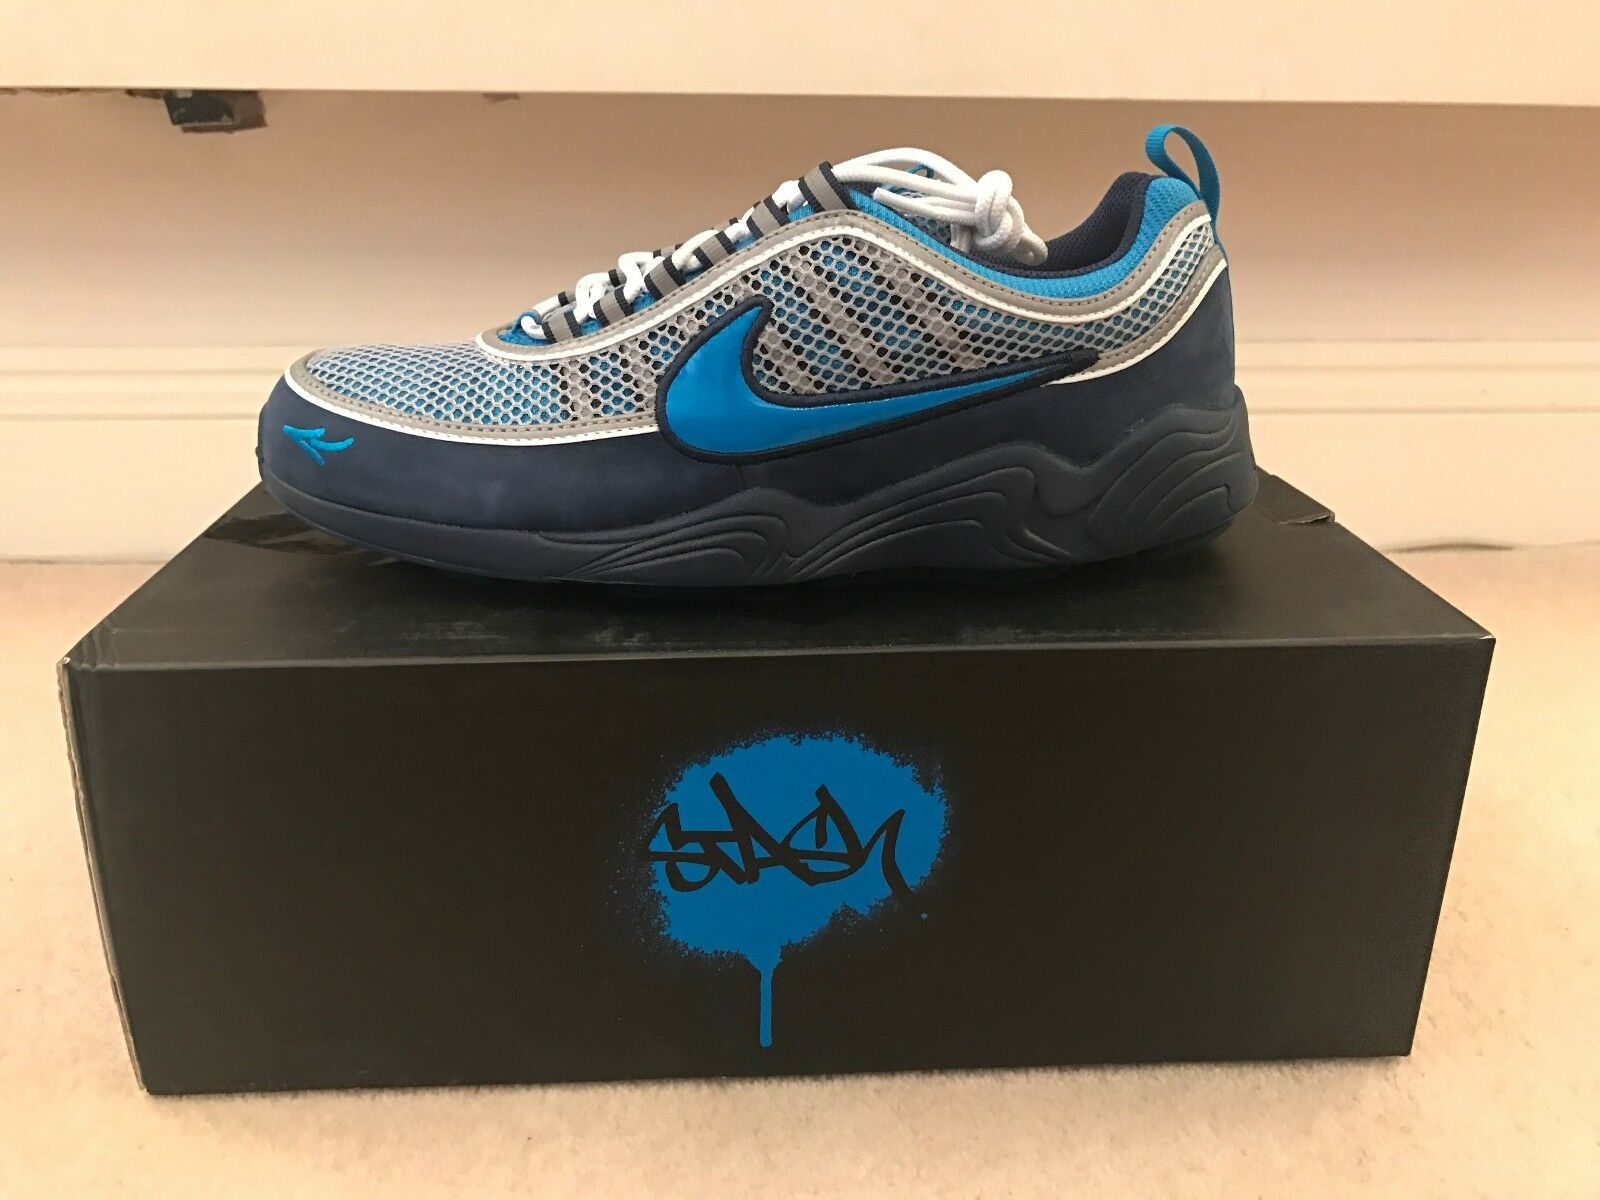 2017 NIKE AIR ZOOM SPIRIDON - STASH - BLUE / CYAN  - / US 11.5